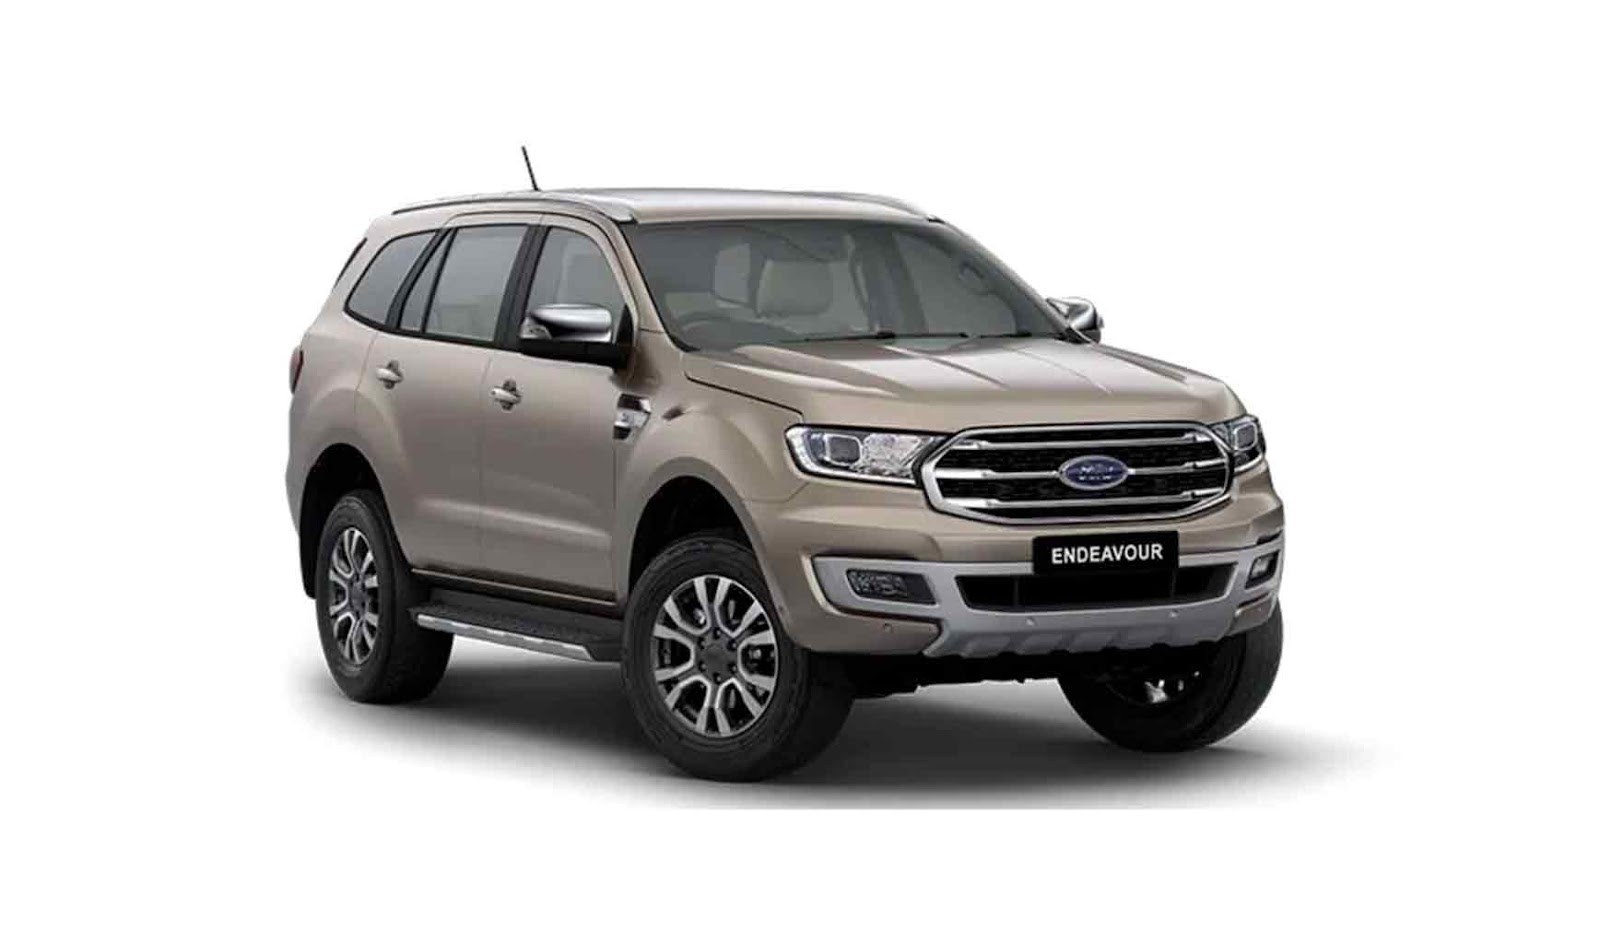 Ford Endeavour exterior image